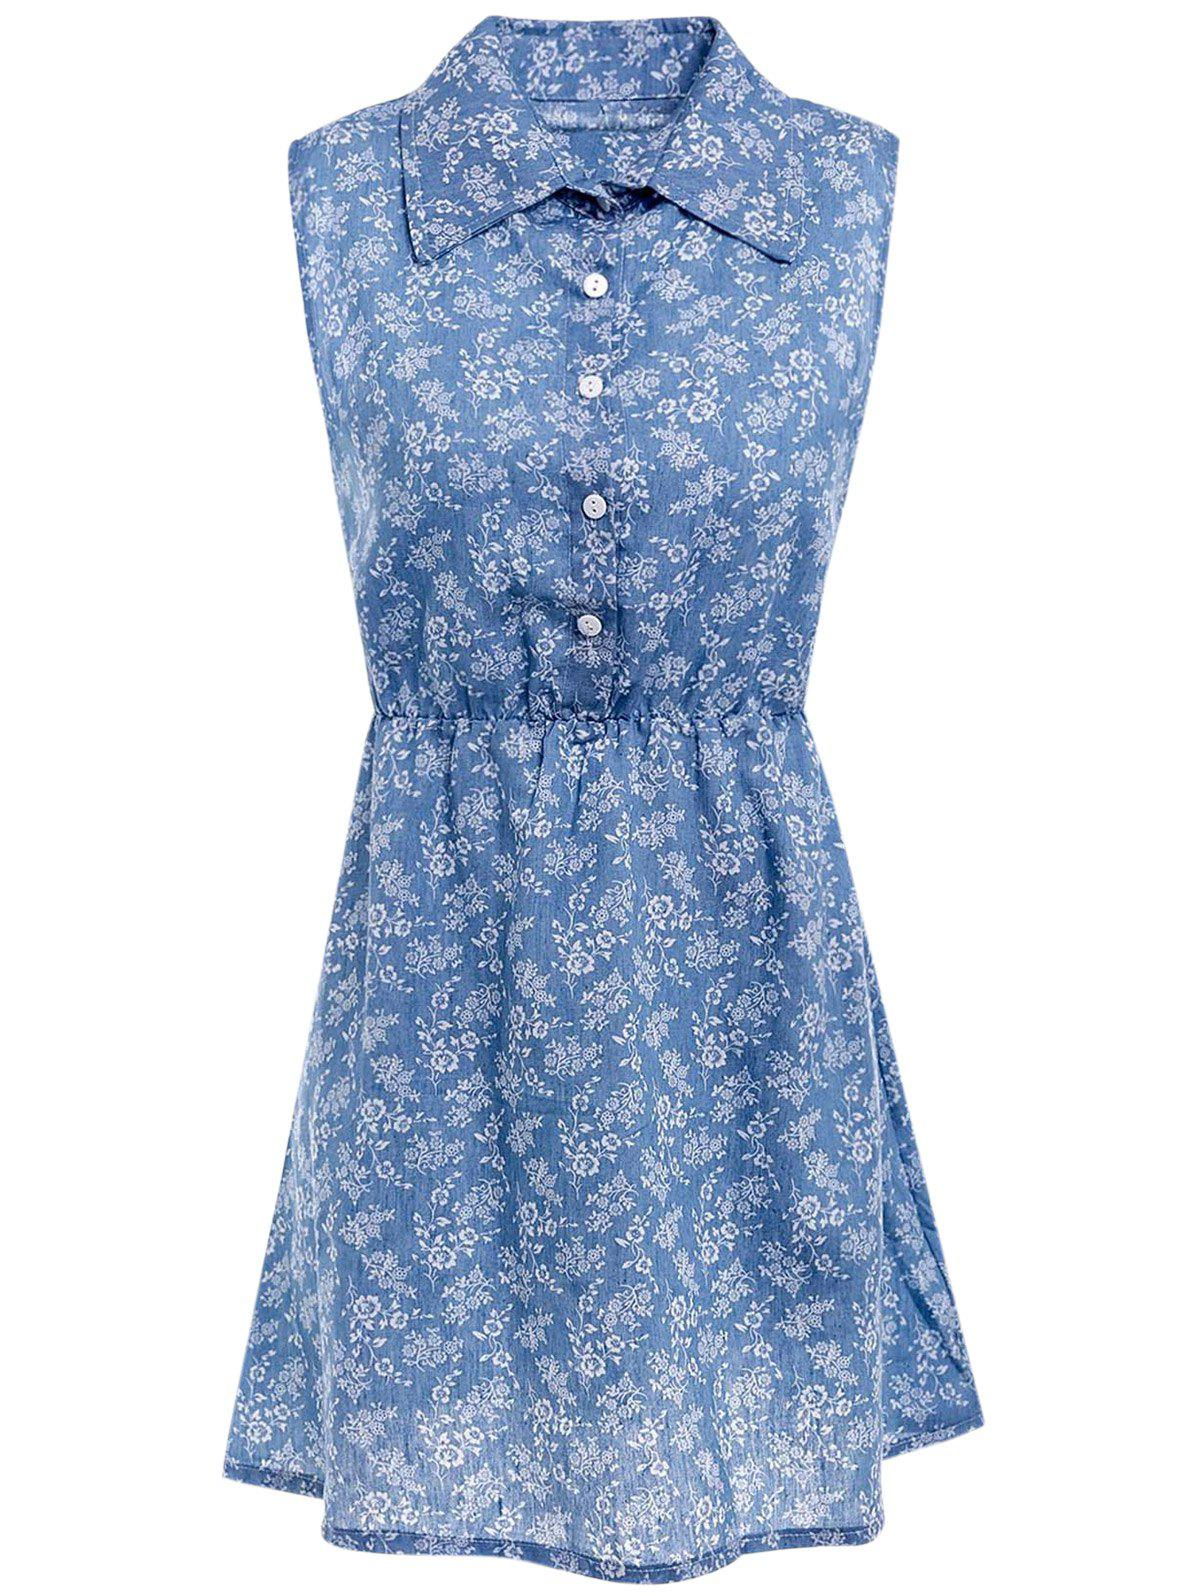 Stylish Women's Shirt Collar Sleeveless Printed Denim Shirt Dress